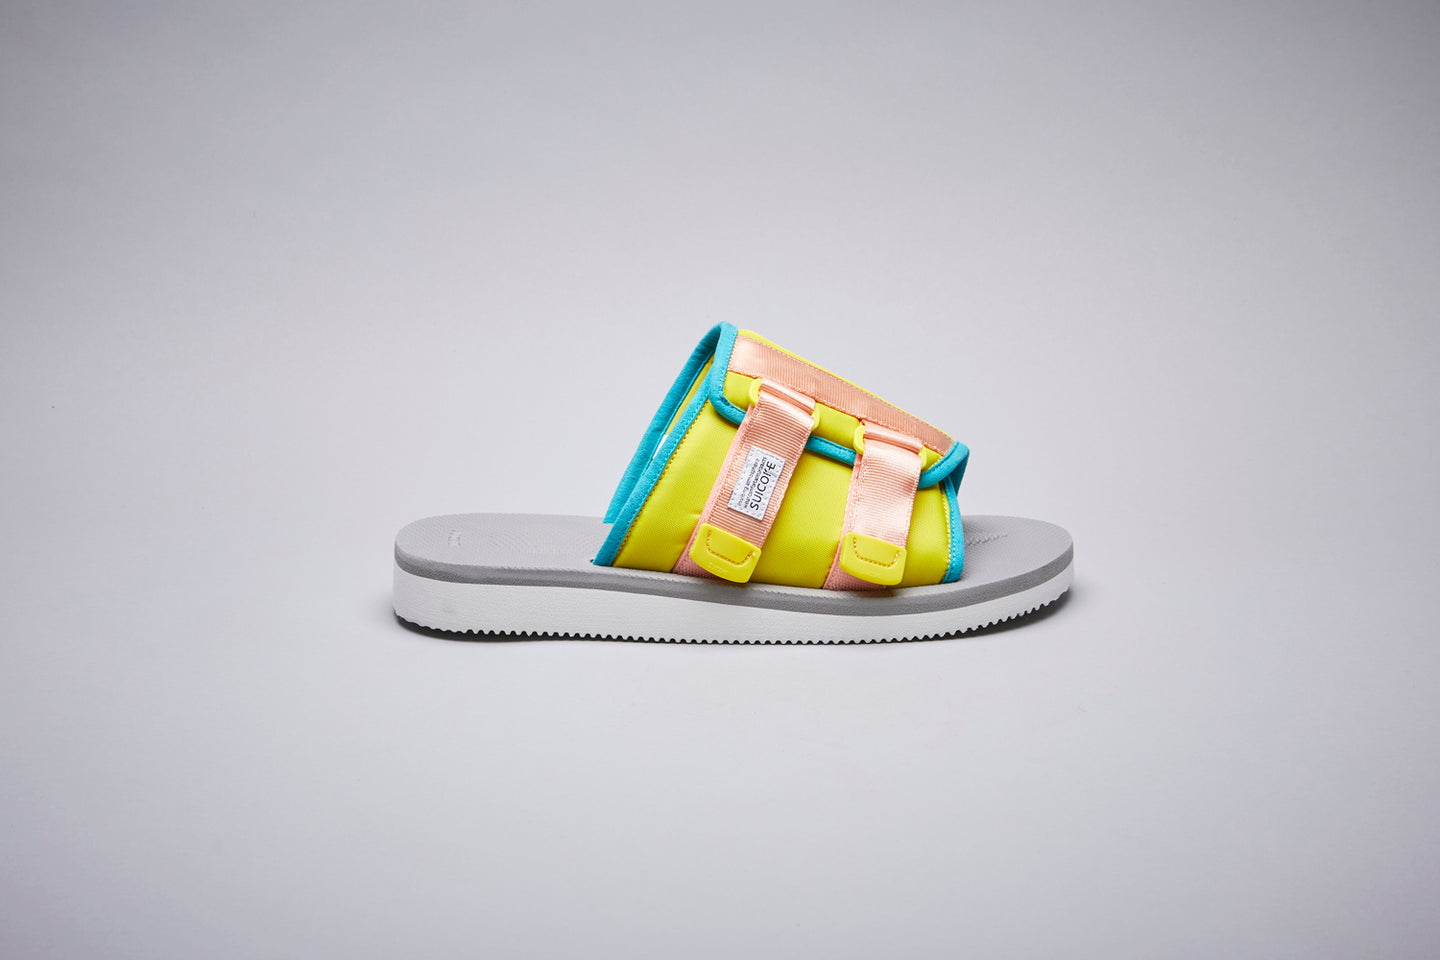 SUICOKE-Sandals-KAW-CAB - Yellow/Gray-OG-081CABOfficial Webstore Spring 2021